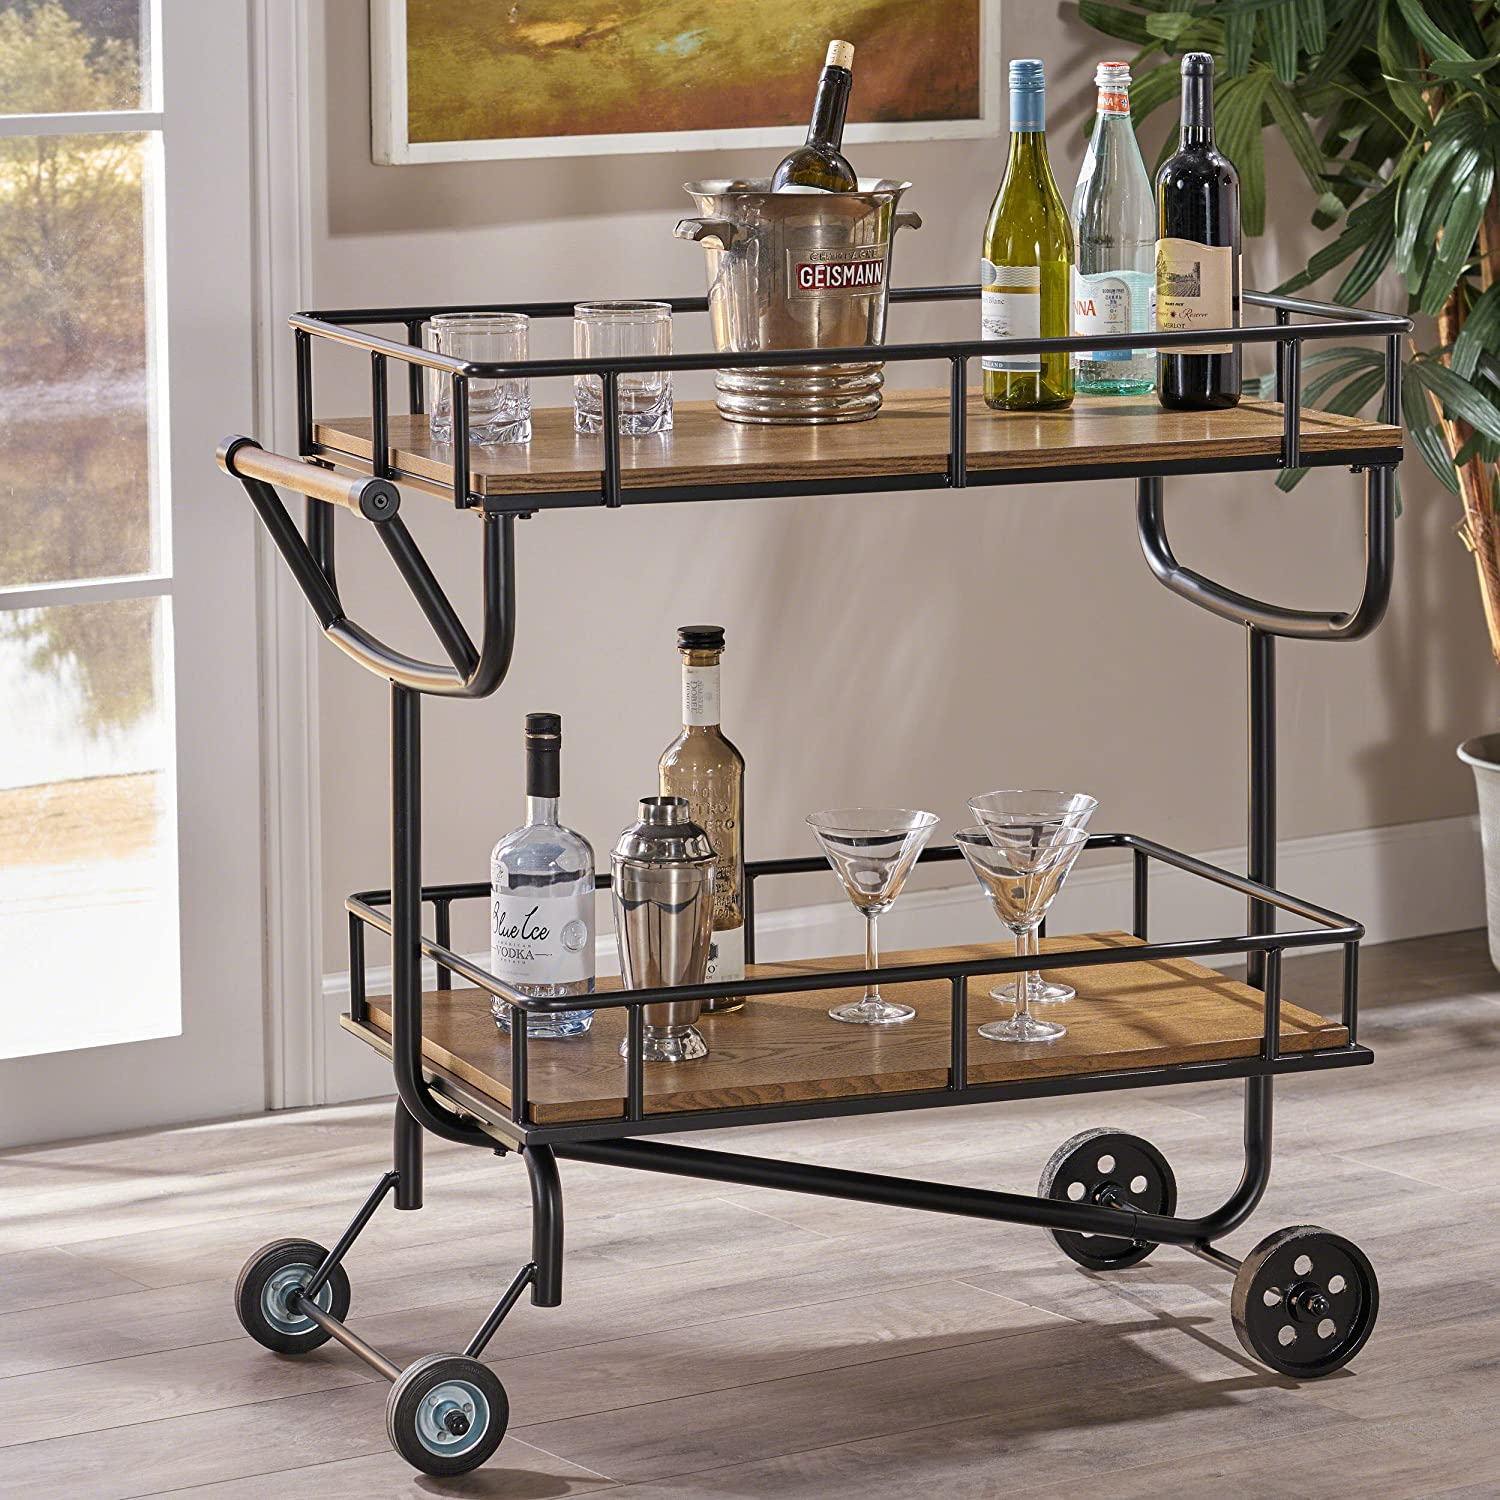 Christopher Knight Home Alice Industrial Brown Faux Wood Bar Cart with Gun Metal Finish Iron Frame